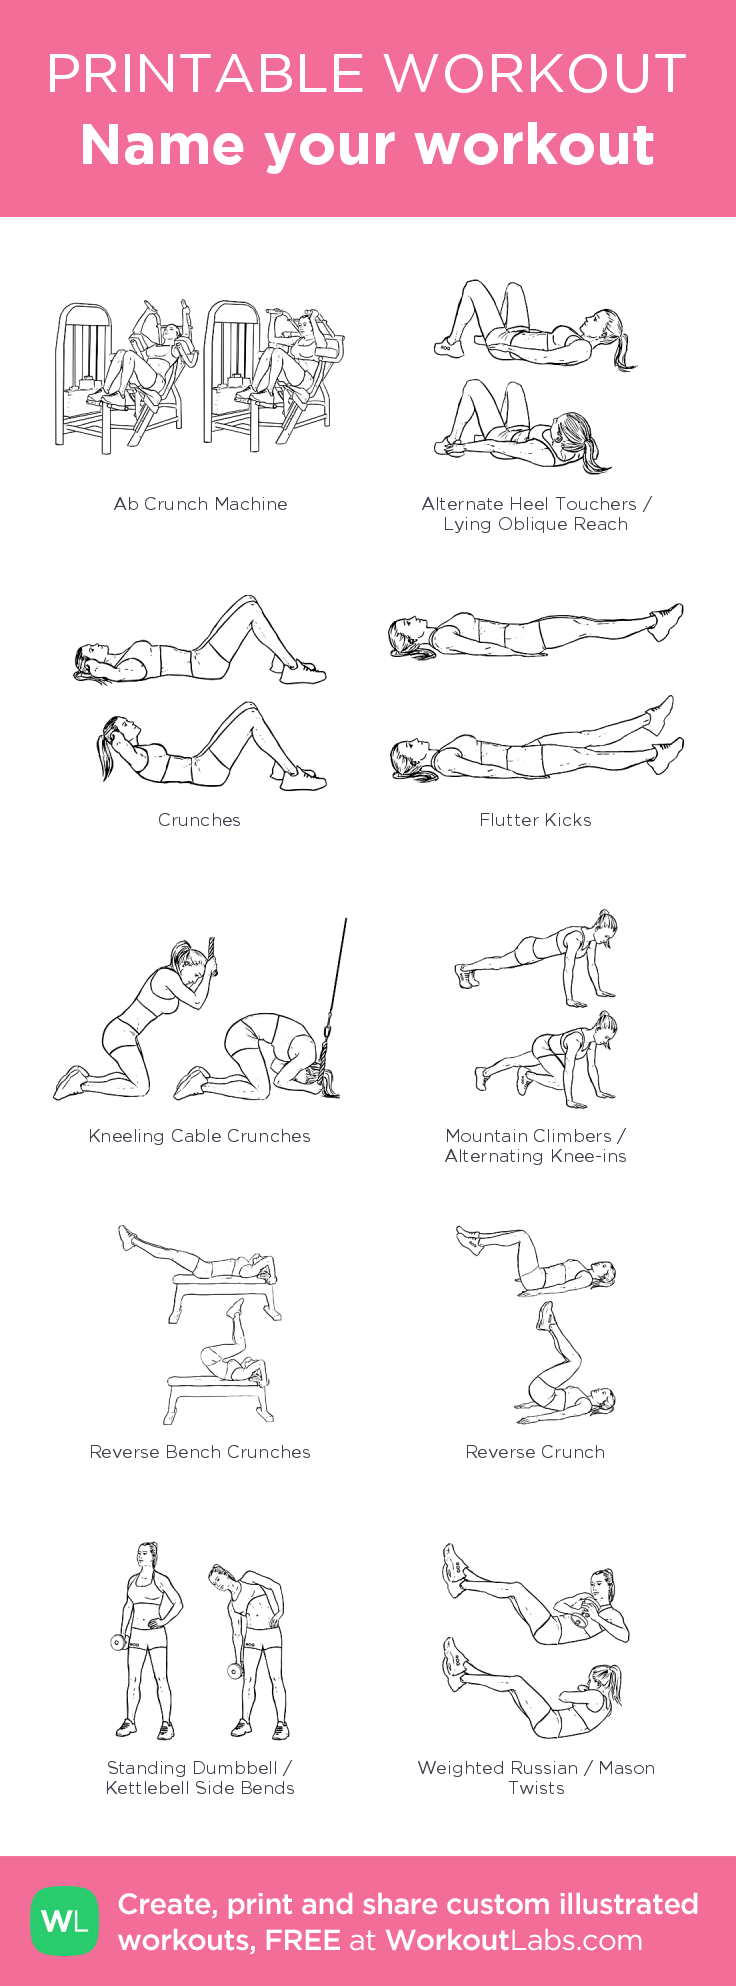 Name your workout – illustrated exercise plan created at ...